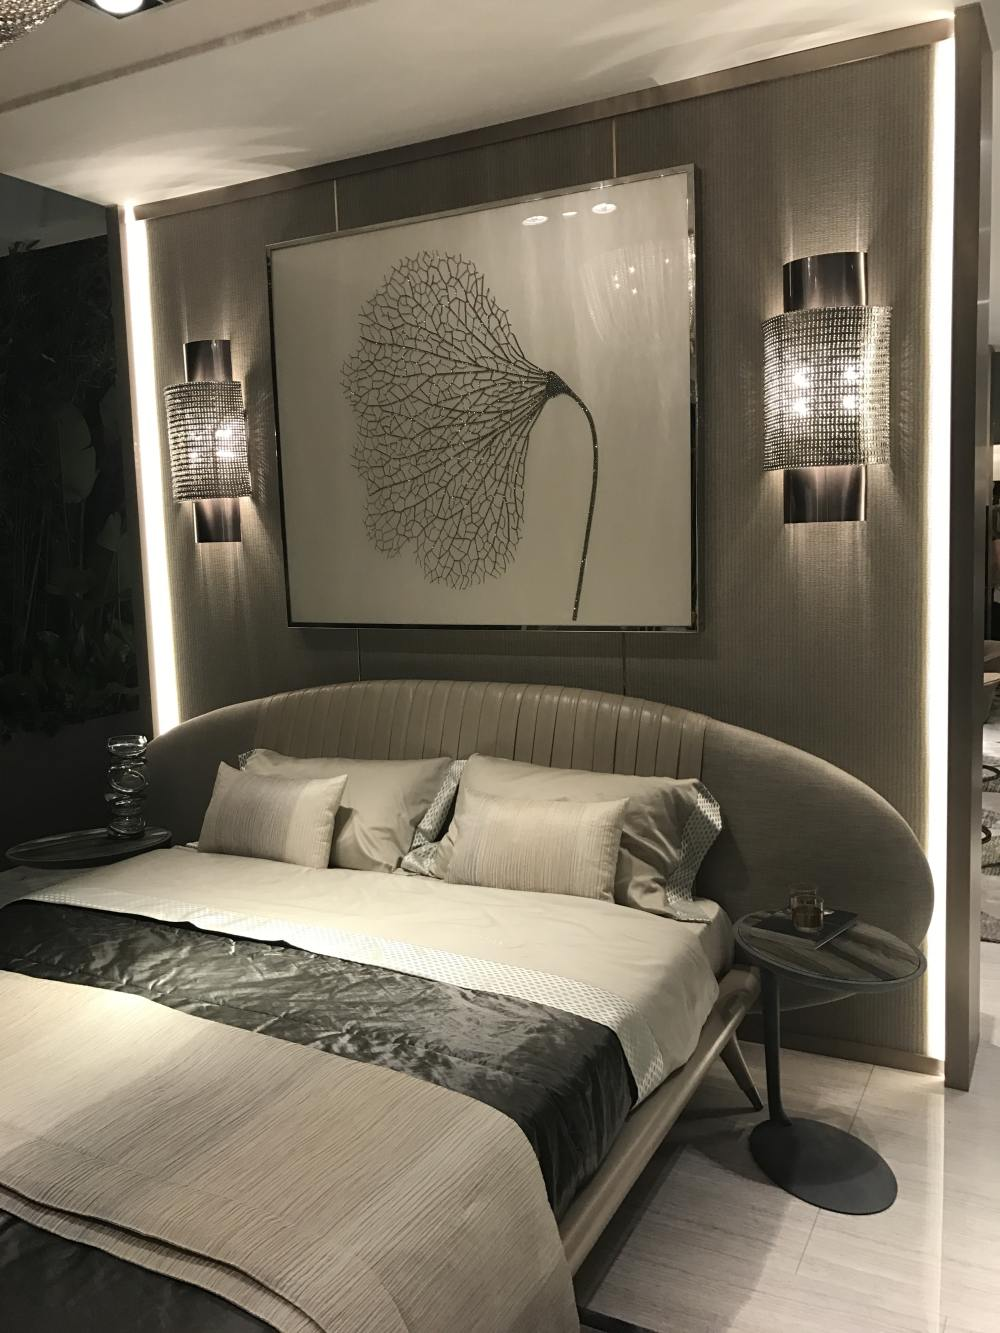 A cool-looking headboard can change the entire bedroom